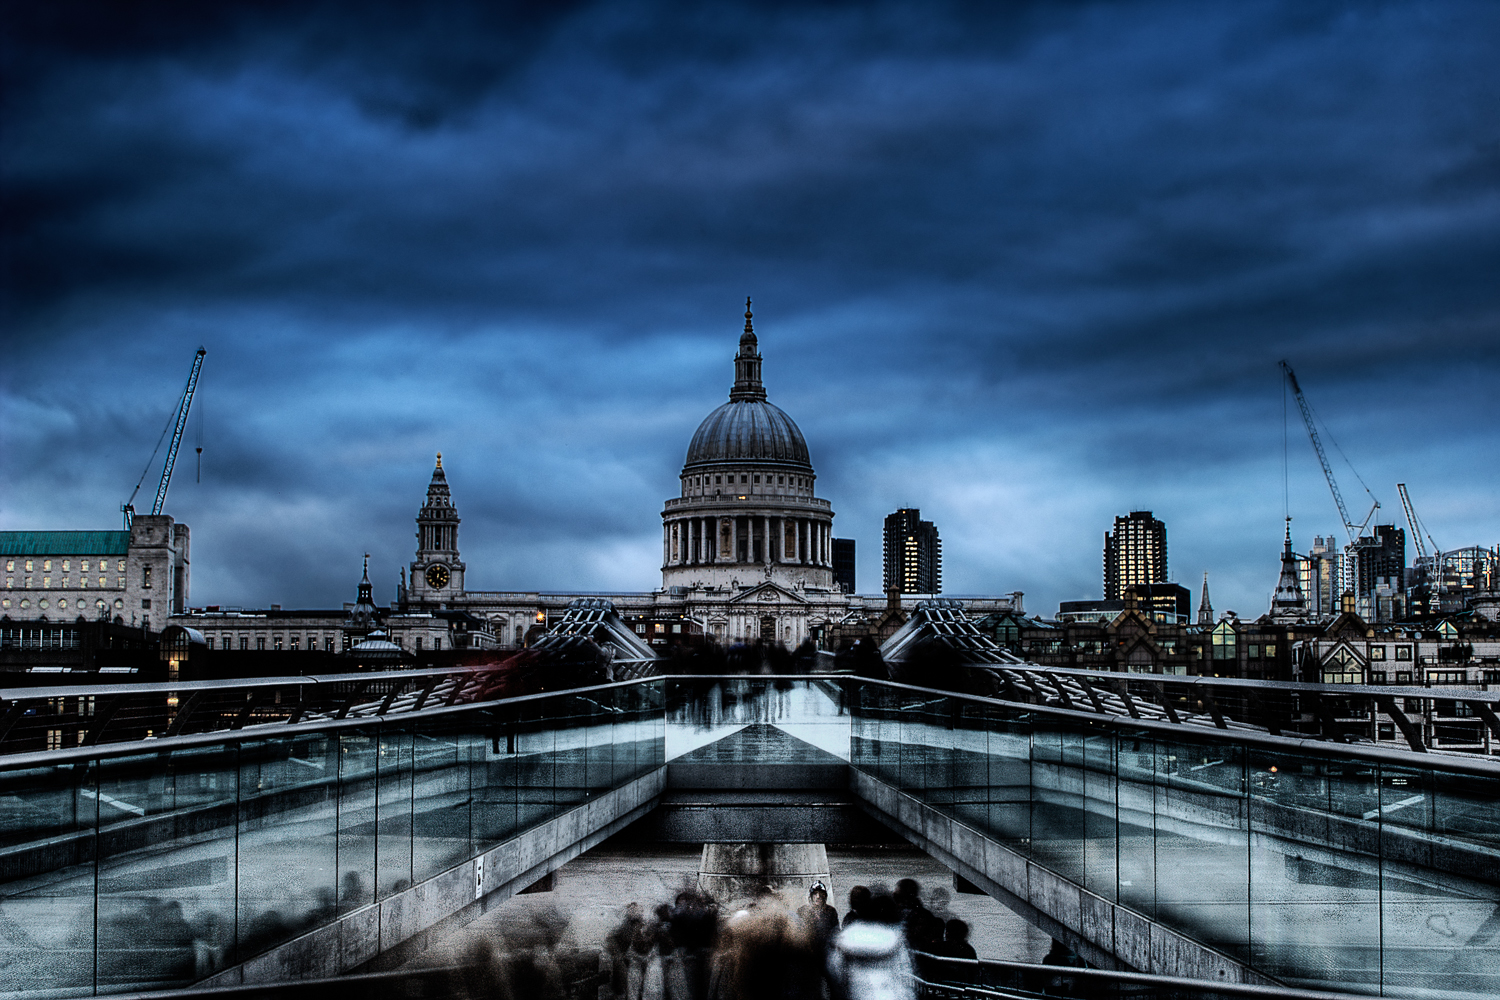 Millennium Bridge, London